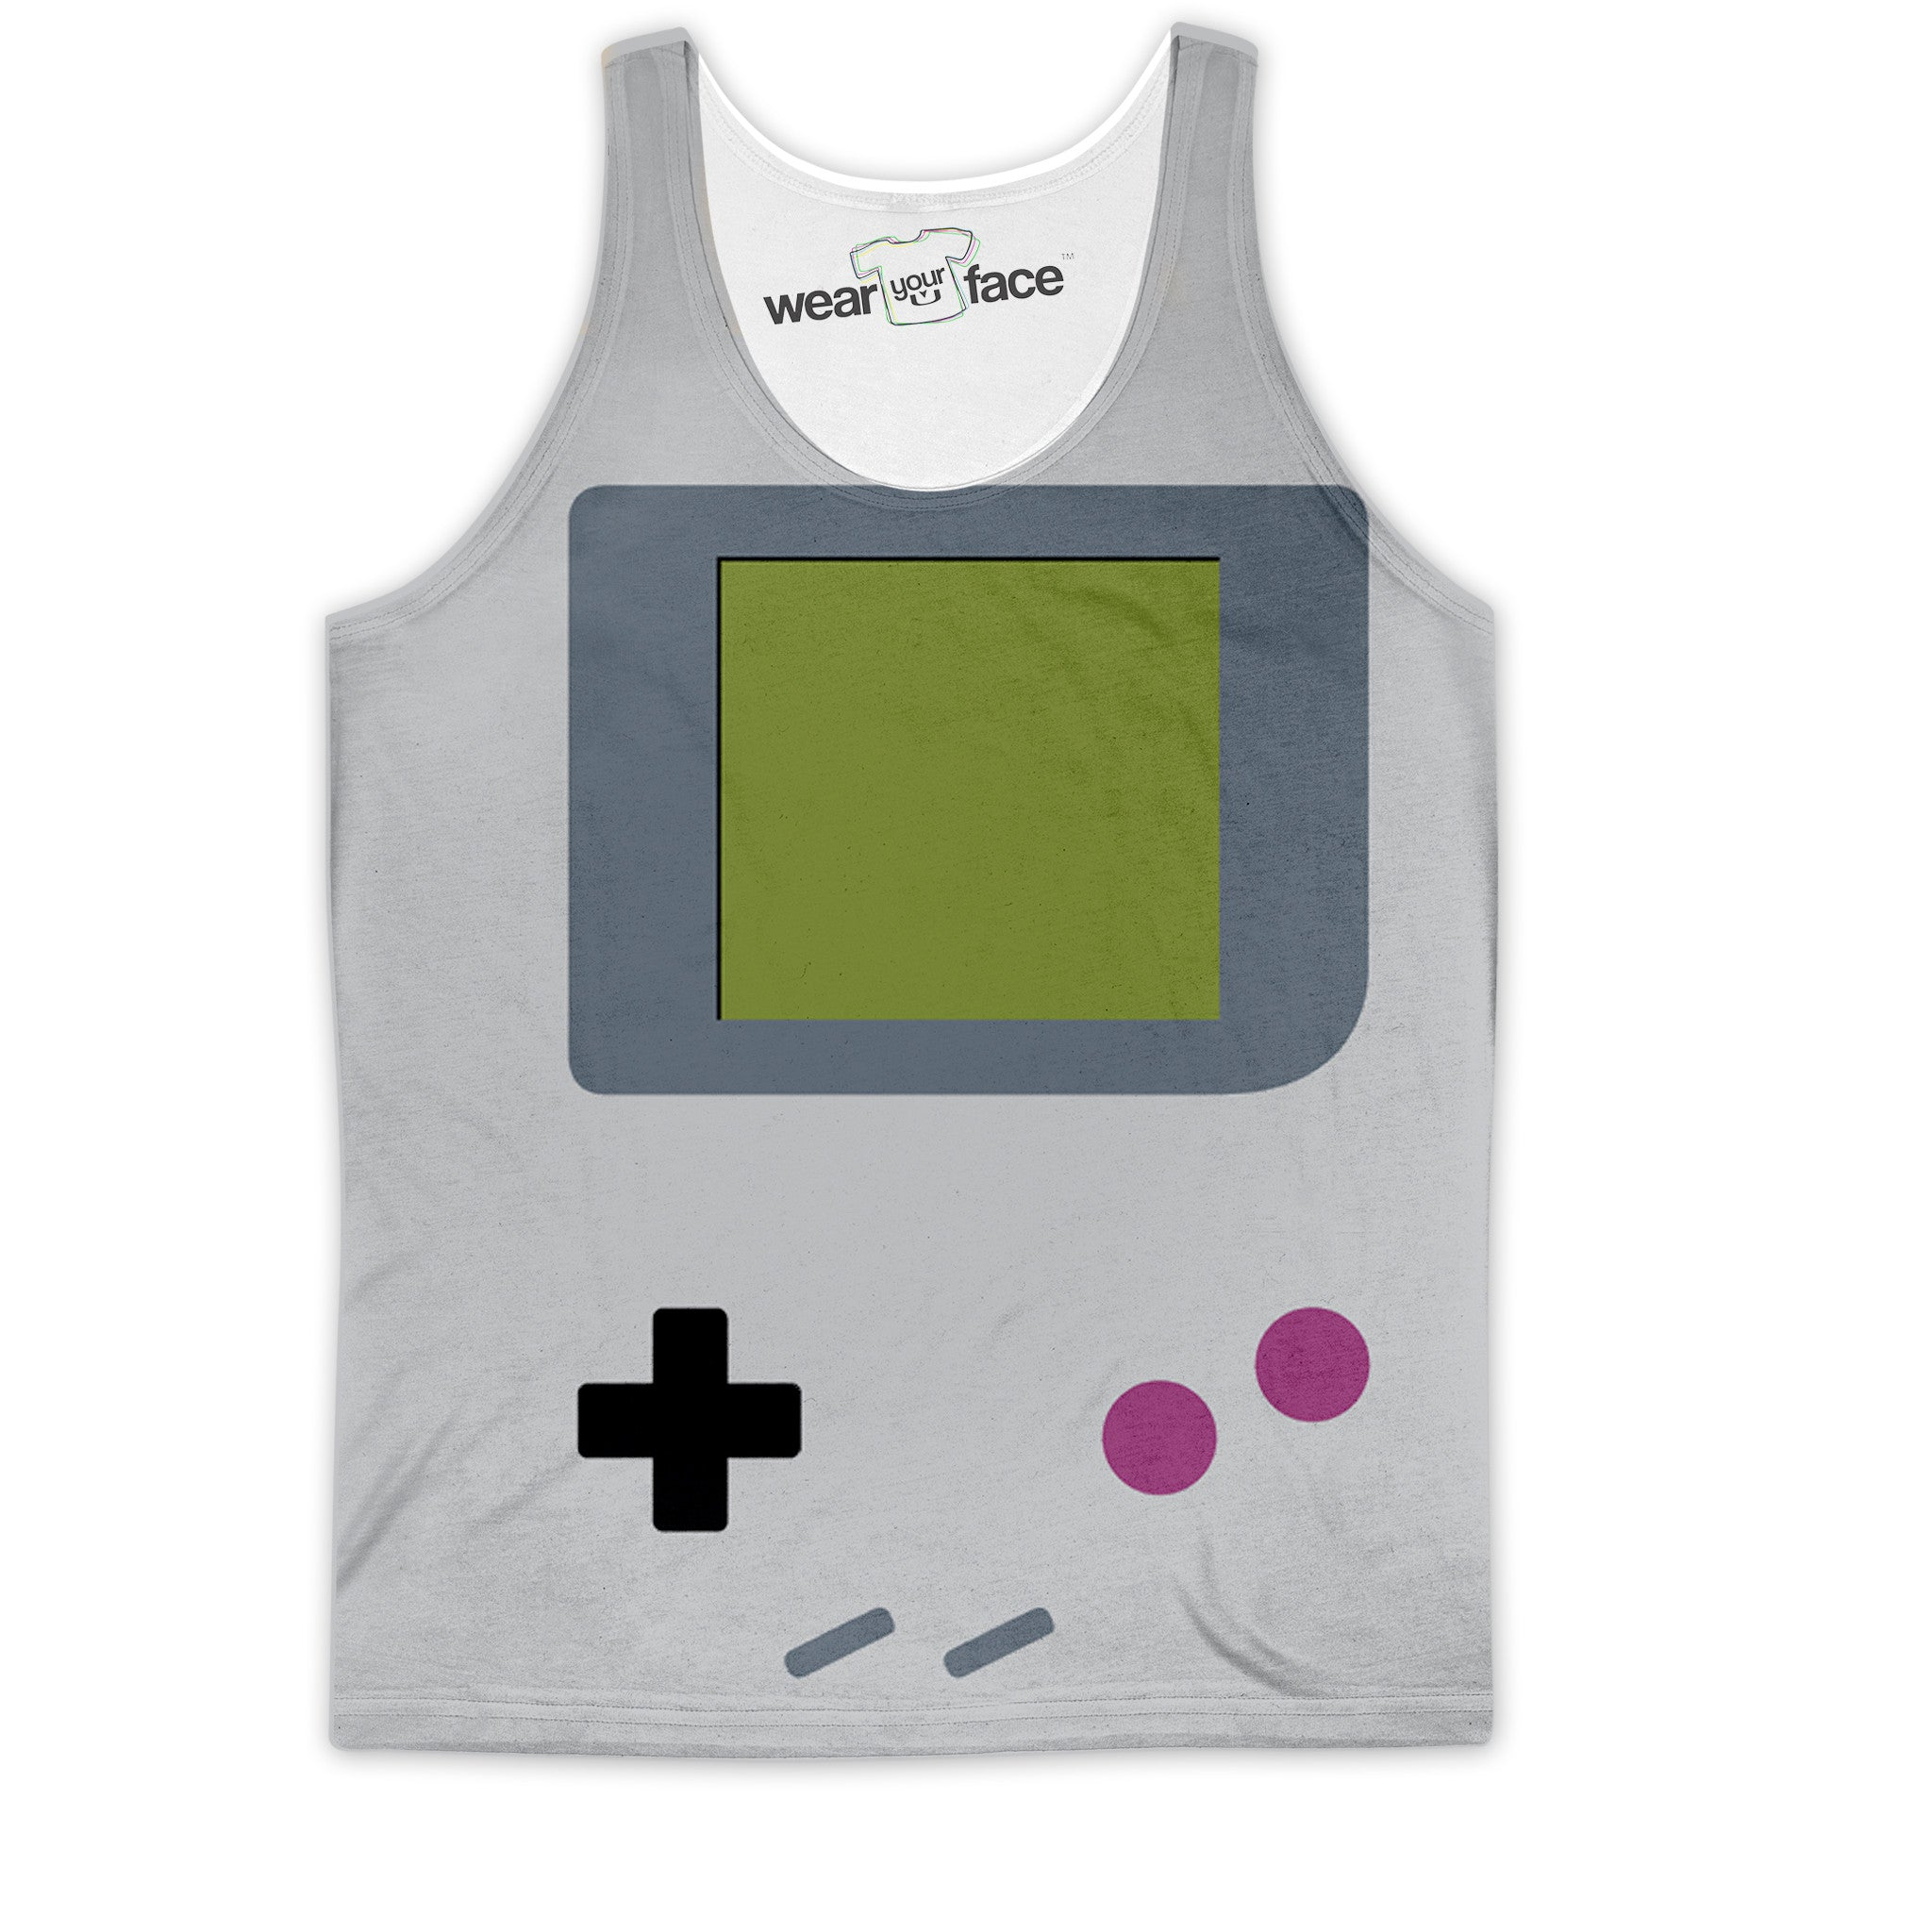 The OG Gameboy Tank